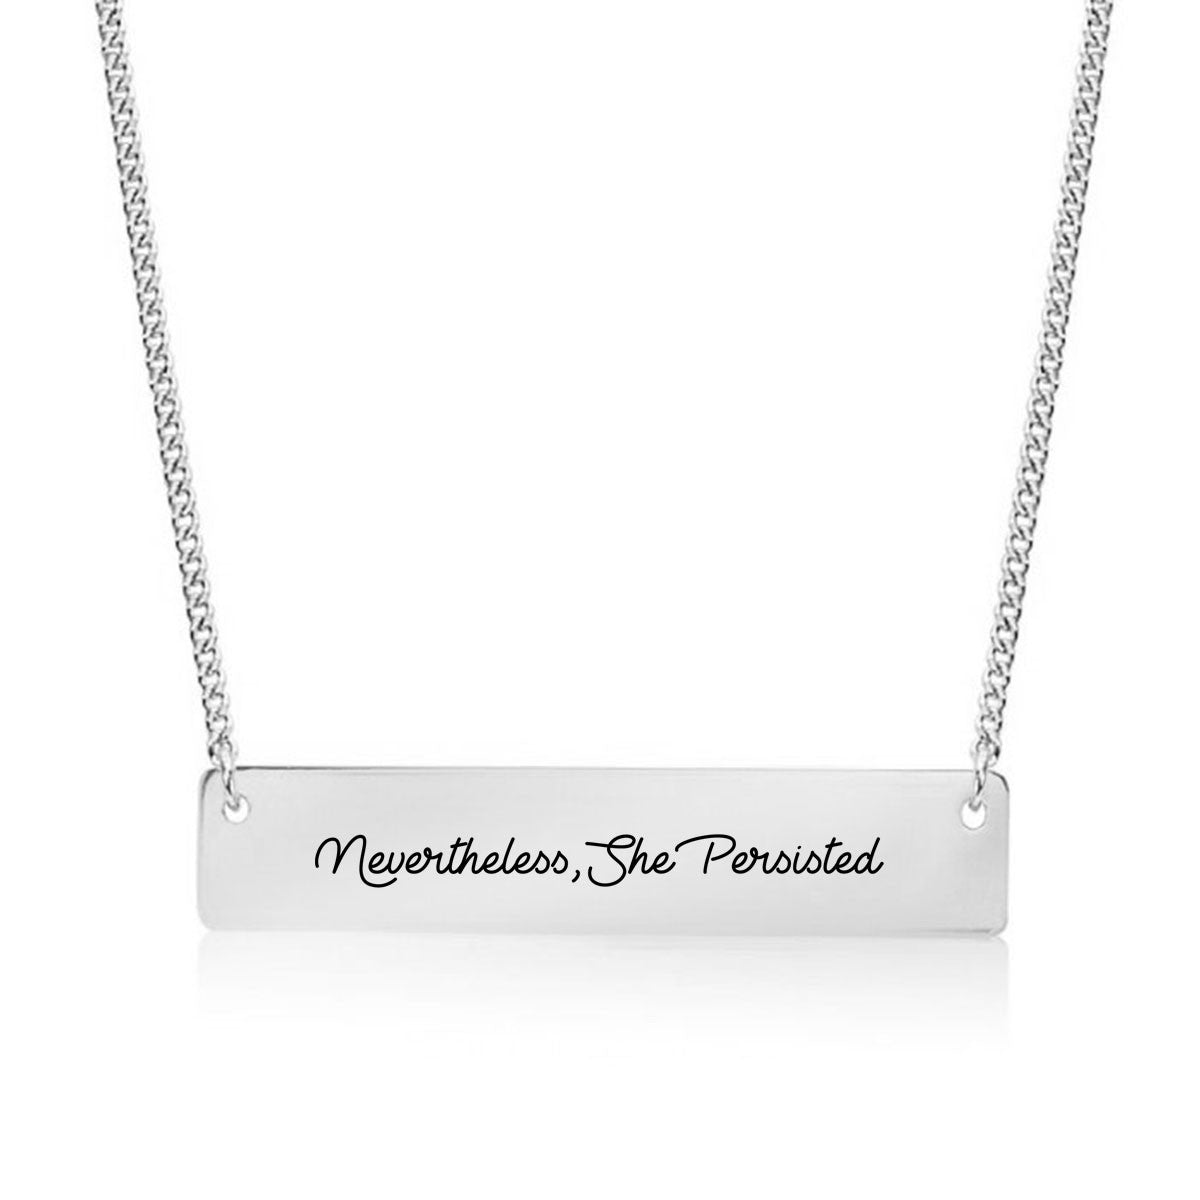 Nevertheless, She Persisted Script Gold / Silver Bar Necklace - pipercleo.com